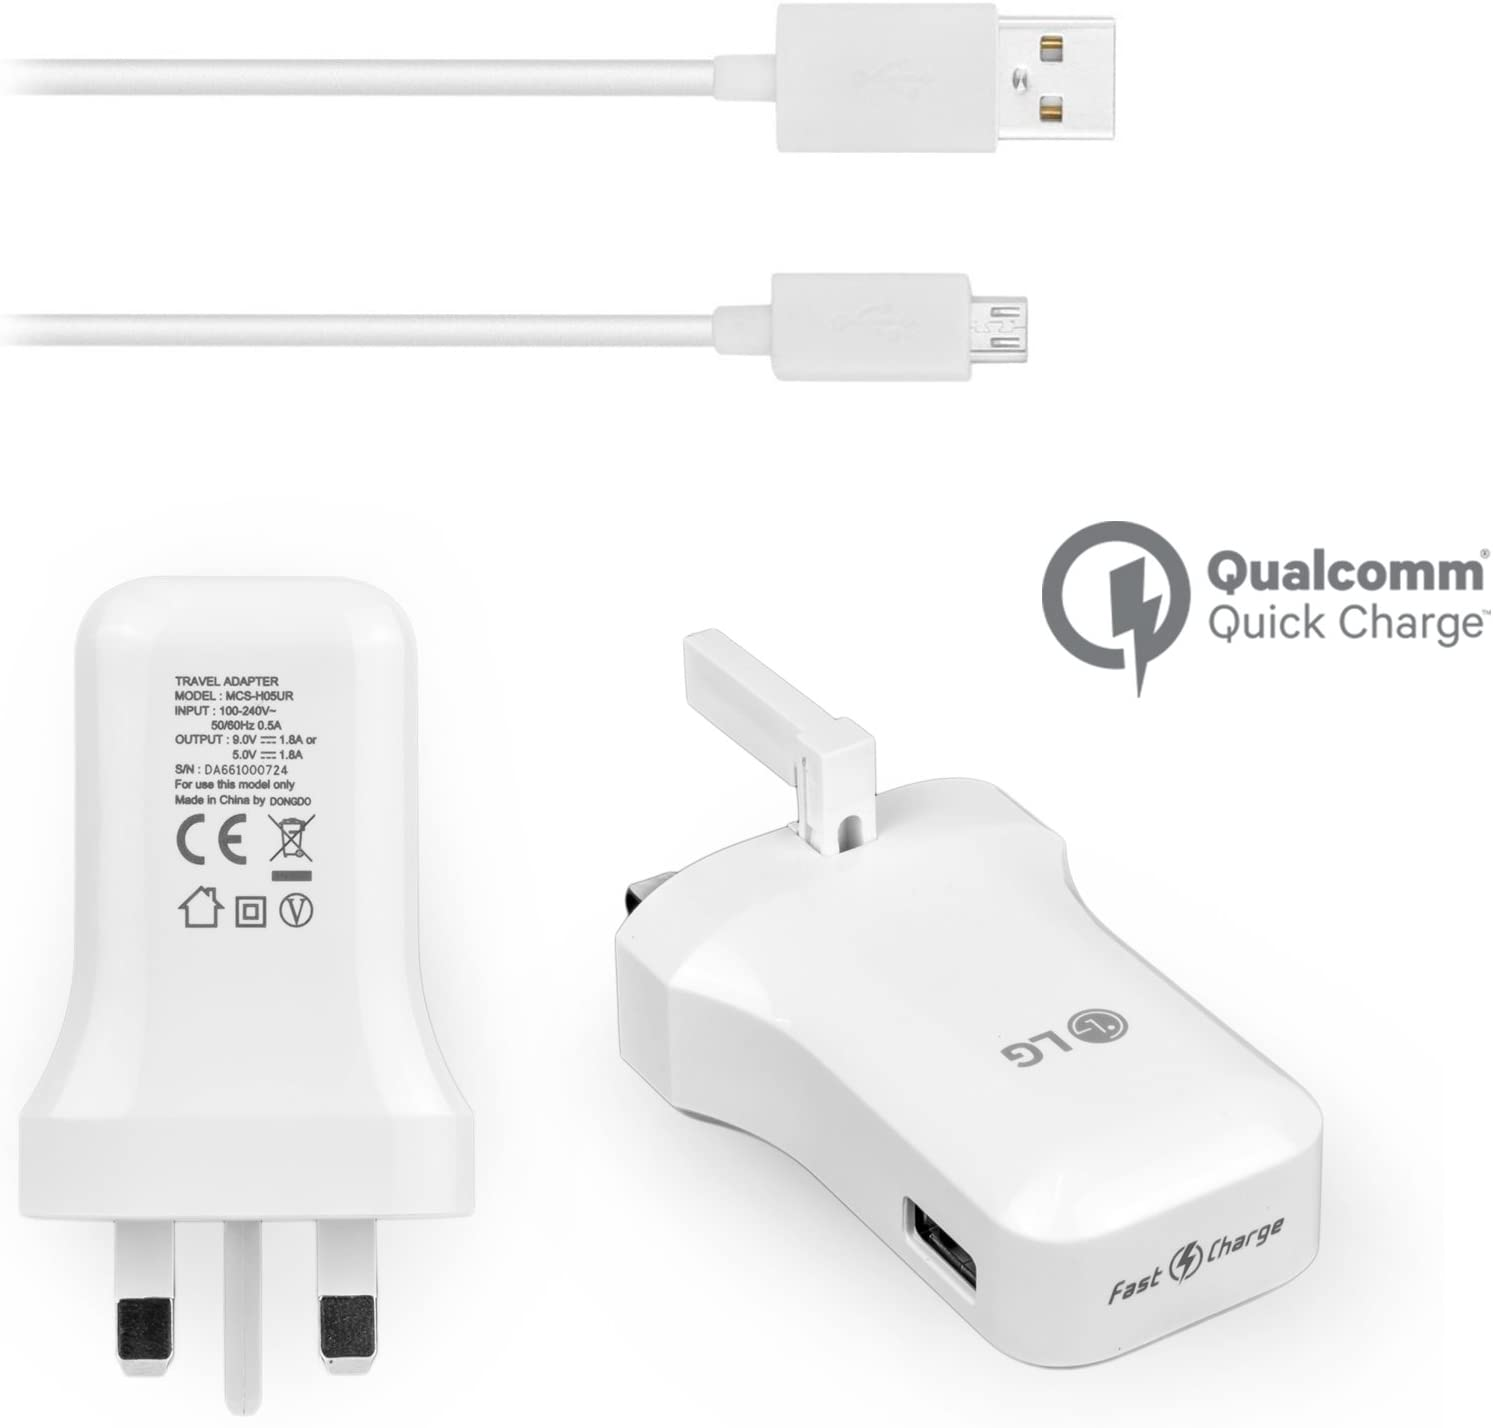 Genuine Lg Mains Wall Charger Qualcomm Fast Charge 9 0 5 0v High Power 1 8a For Lg V10 Lg G4 G3 G2 Lg Flex 2 Nexus 5 Leon 4g With Generic Usb Data Cable Sync Charge